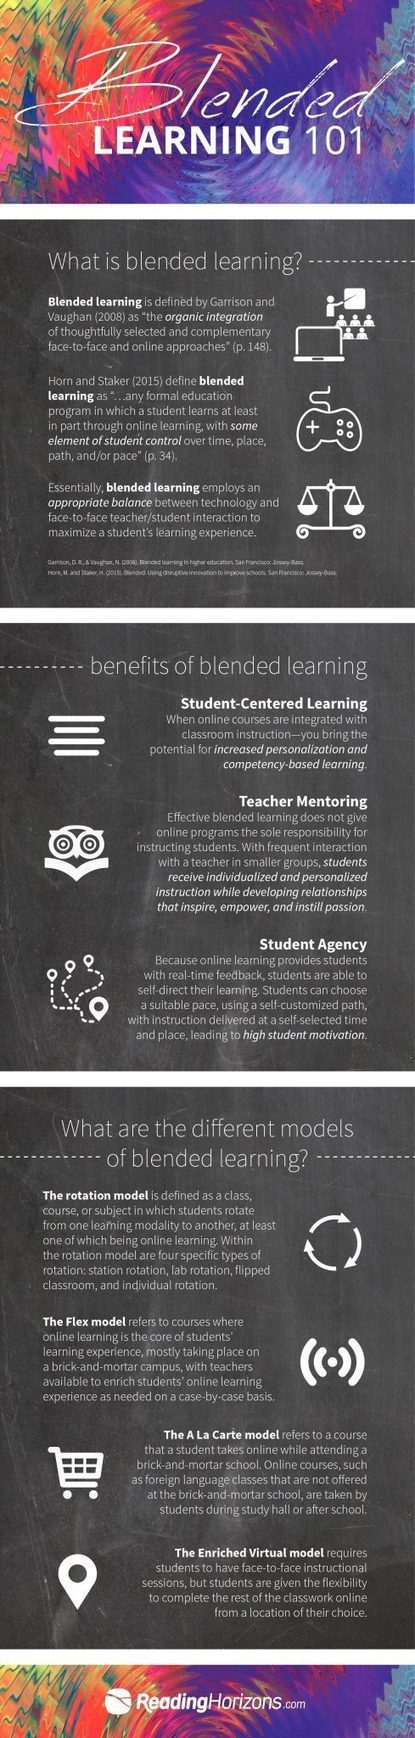 Blended Learning 101 Infographic | SciTEACH21Cscoop | Scoop.it